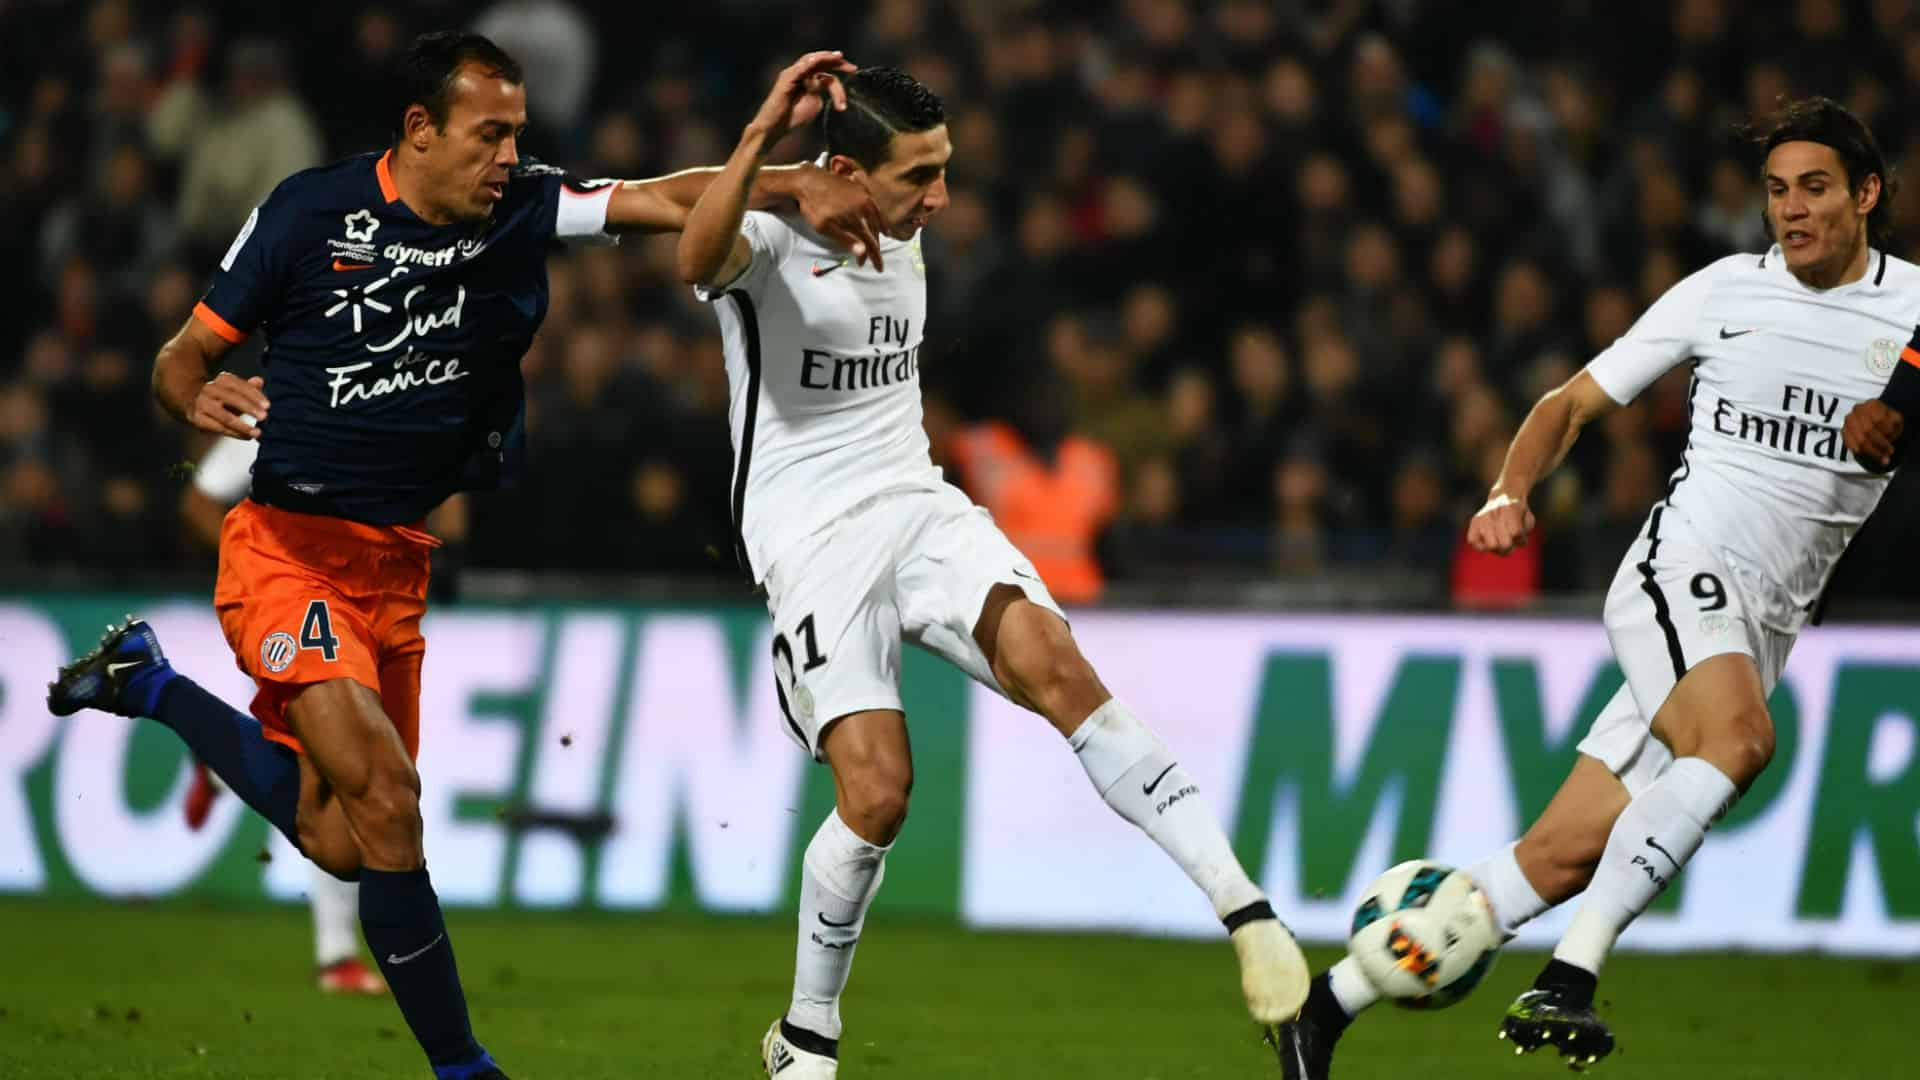 Paris Saint Germain vs Montpellier